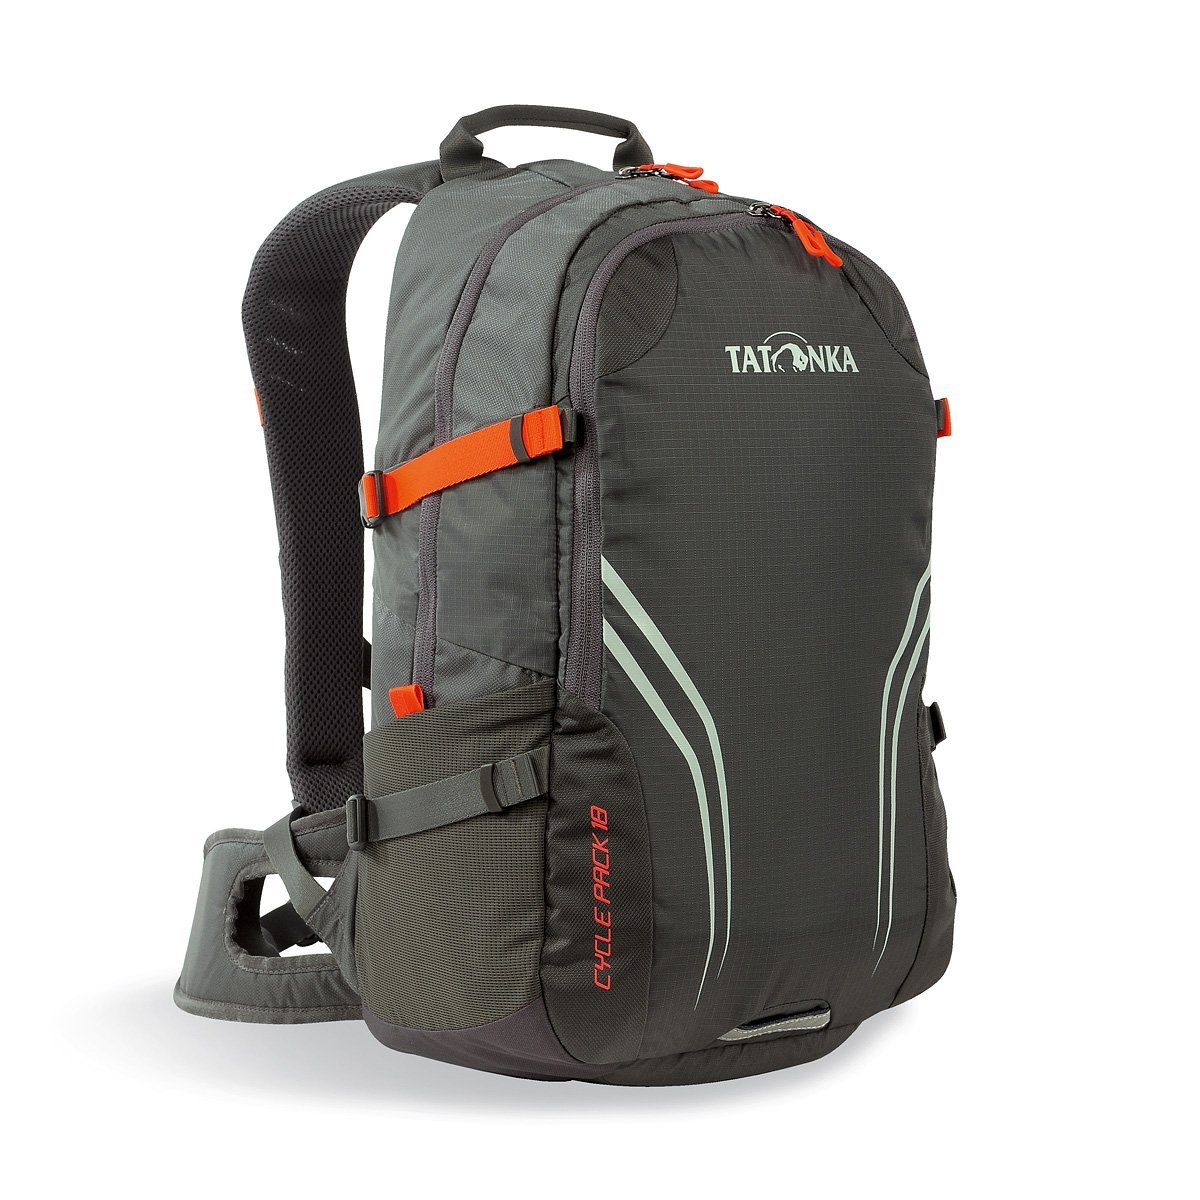 Рюкзак Tatonka Cycle pack 18 (Titan Grey) TAT 1526.021